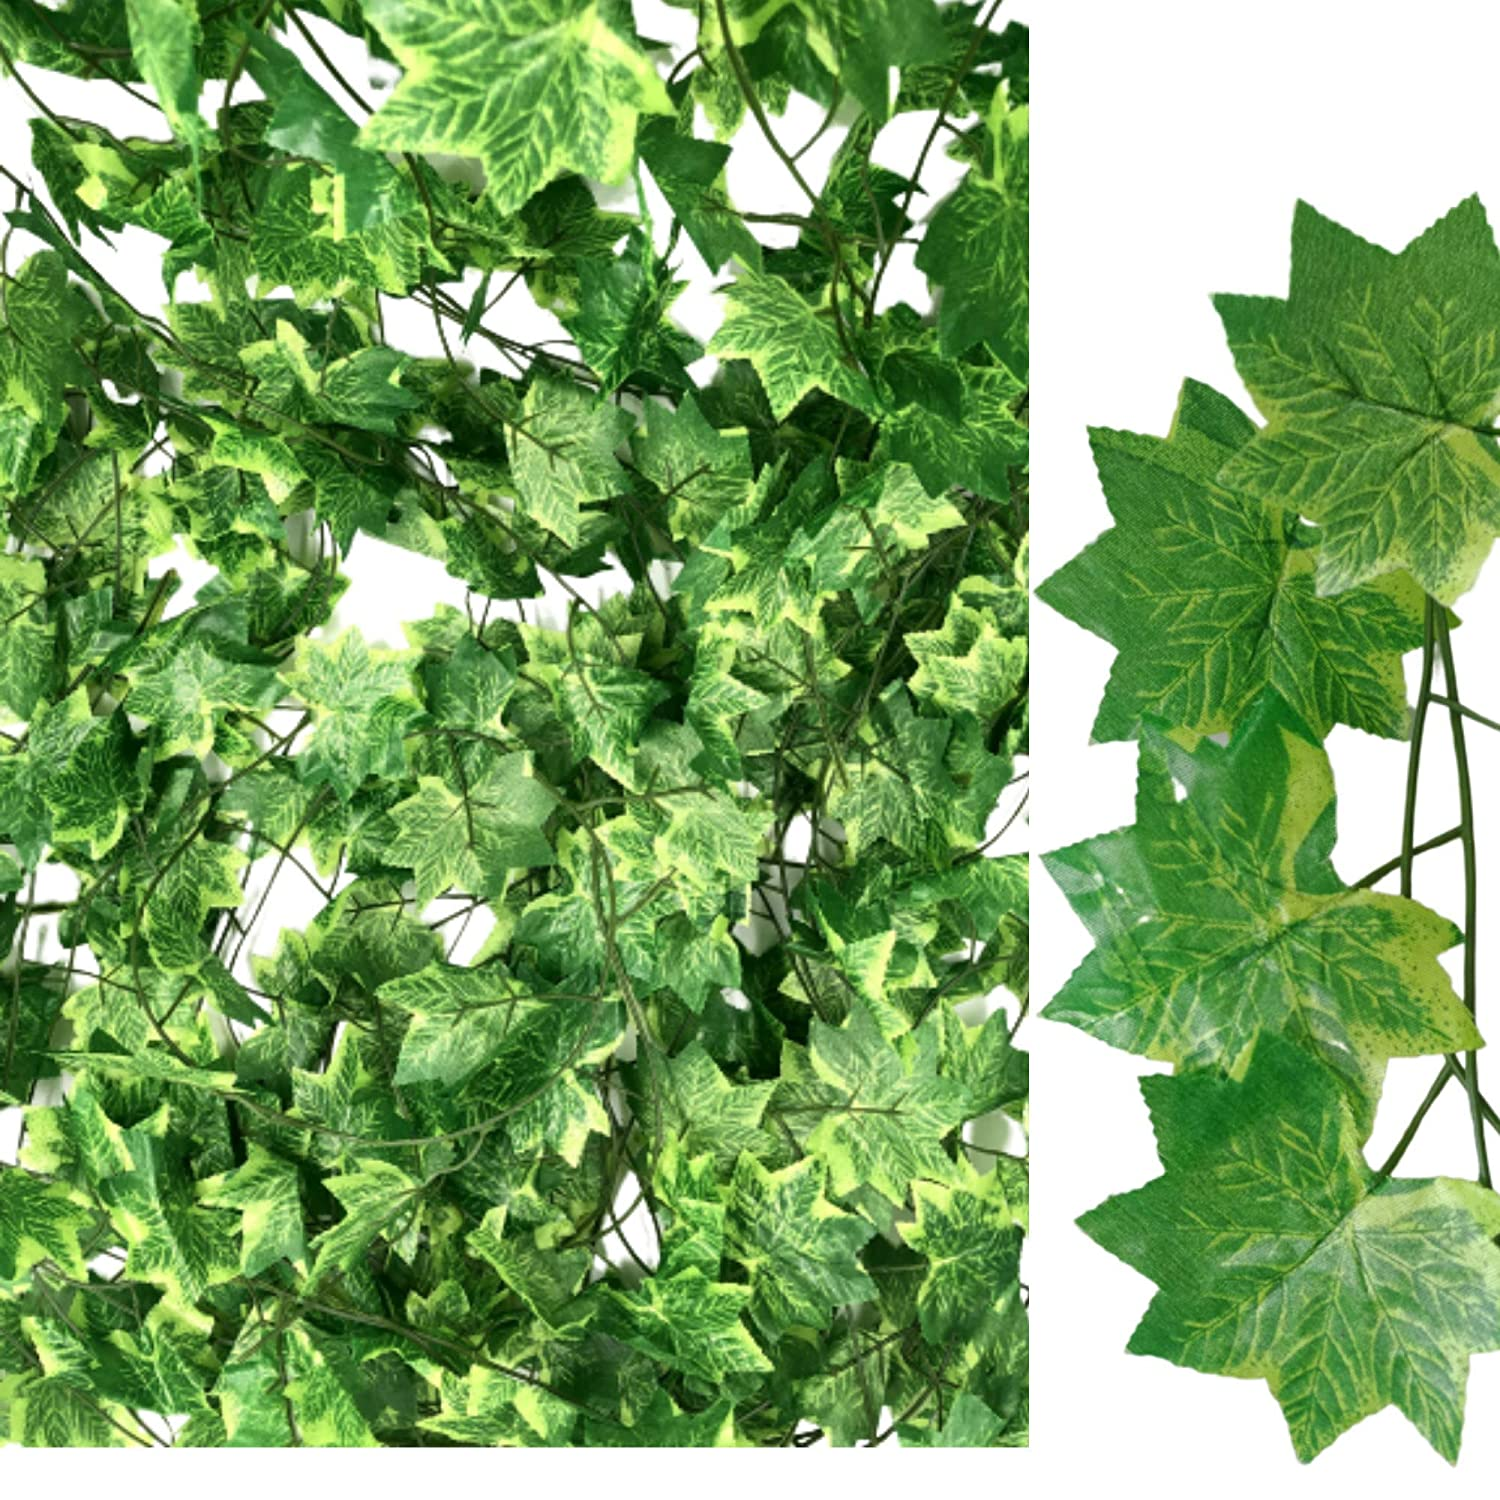 Faux Foliage Vine for Home Patio Wedding Miss Bloom Artificial Ivy Leaf Garlands 12 Pack 84ft Fake Leaves Greenery Backdrop Vines Jungle Party Decorations Silk Wall Hanging Plants Begonia